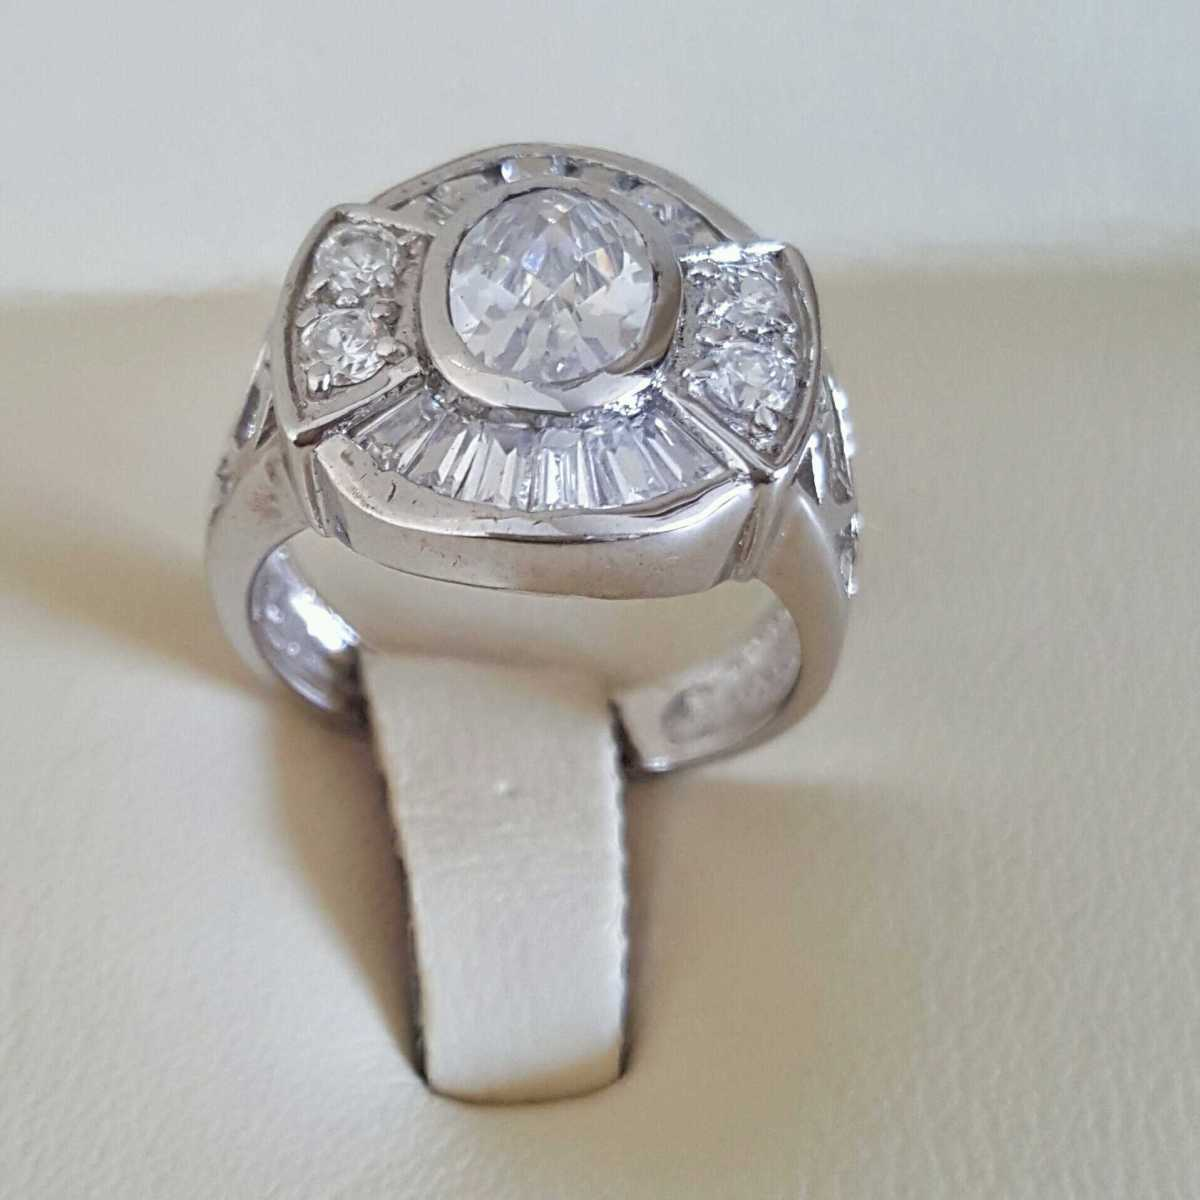 Pure Silver 925 Men Rings Italian Rings Imported From Dubai 21 natural gemstones pakistan + 925 silver jewelry online